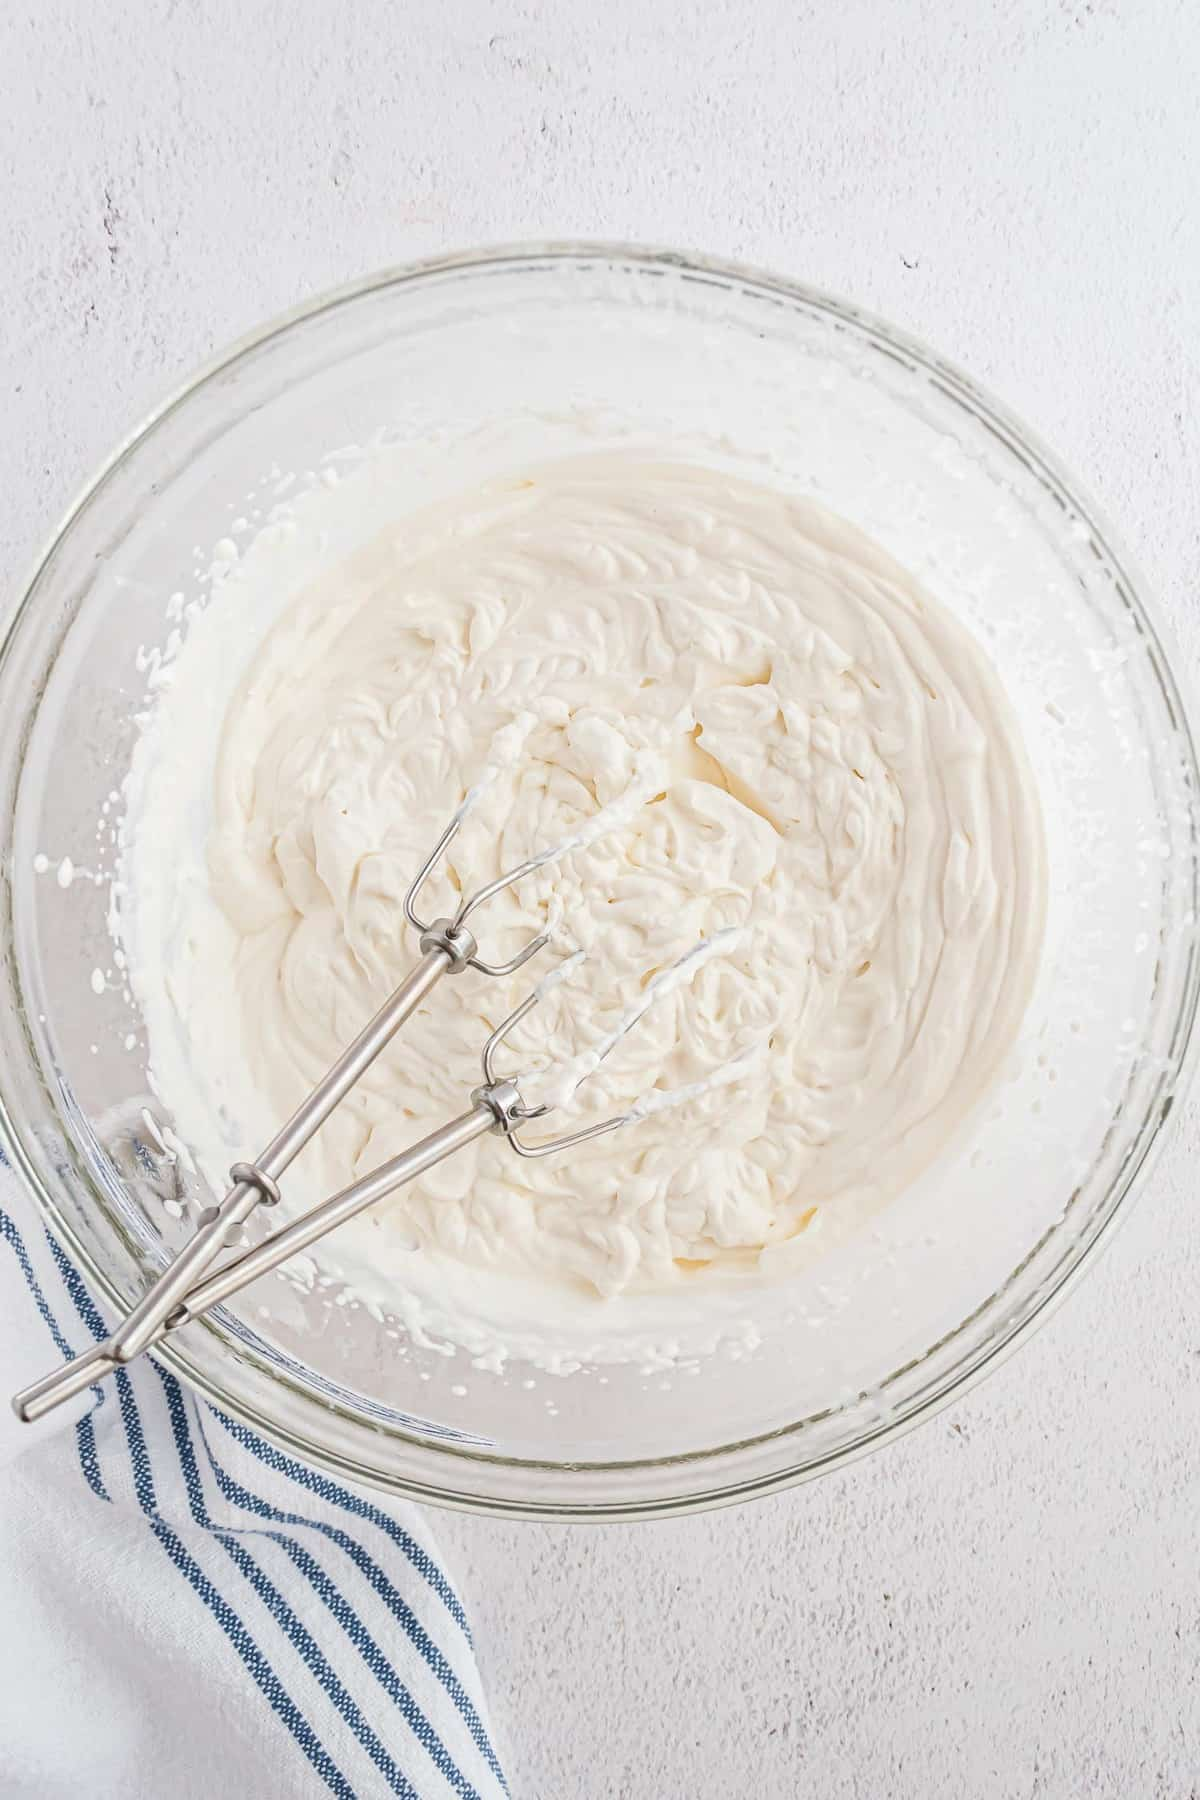 Whipped cream with beaters.